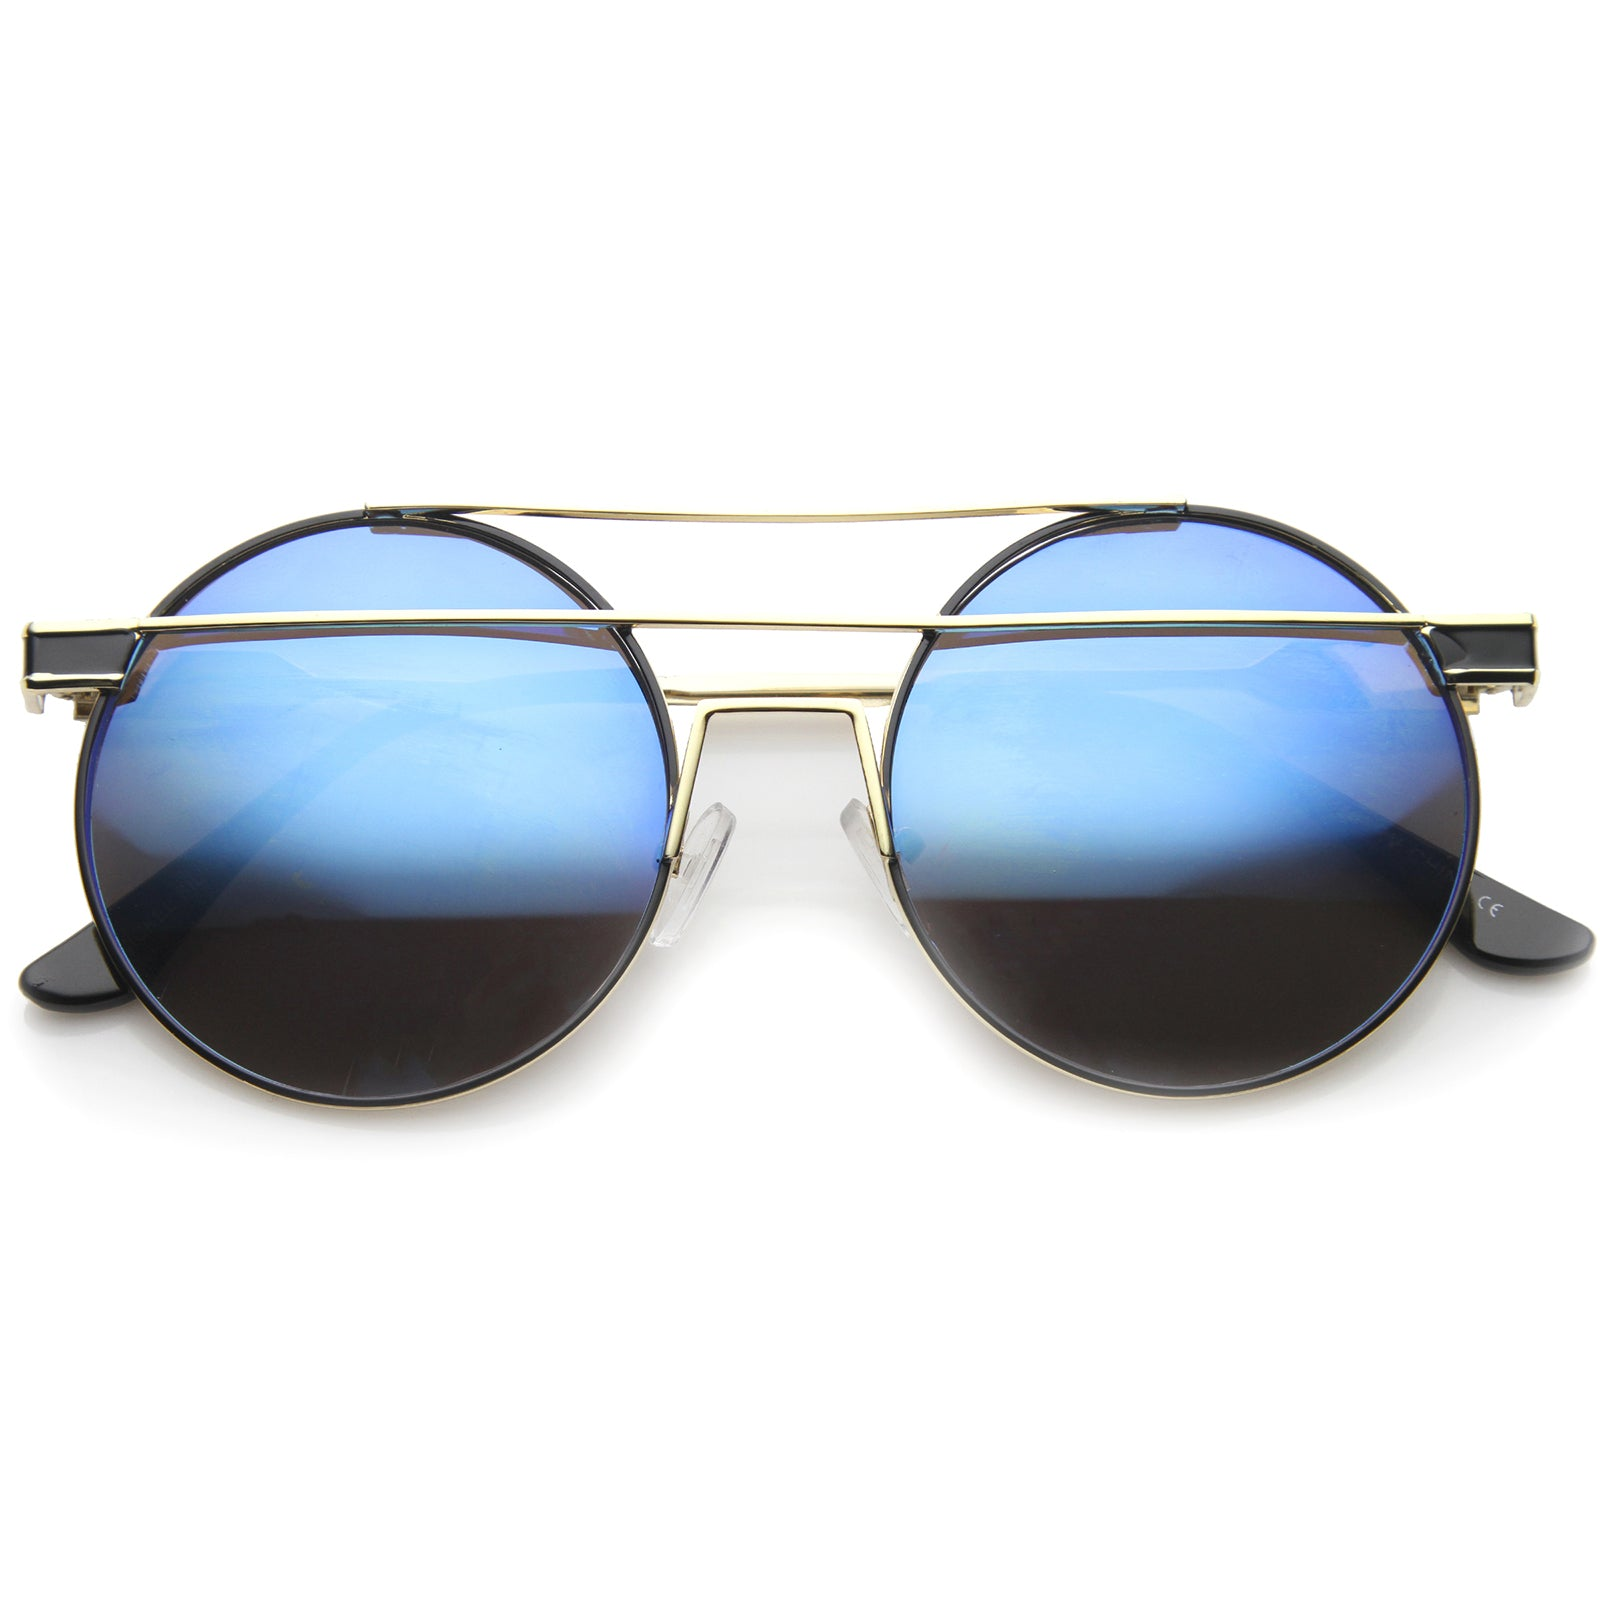 Modern Metal Frame Double Bridge Colored Mirror Lens Round Sunglasses 59mm - sunglass.la - 1